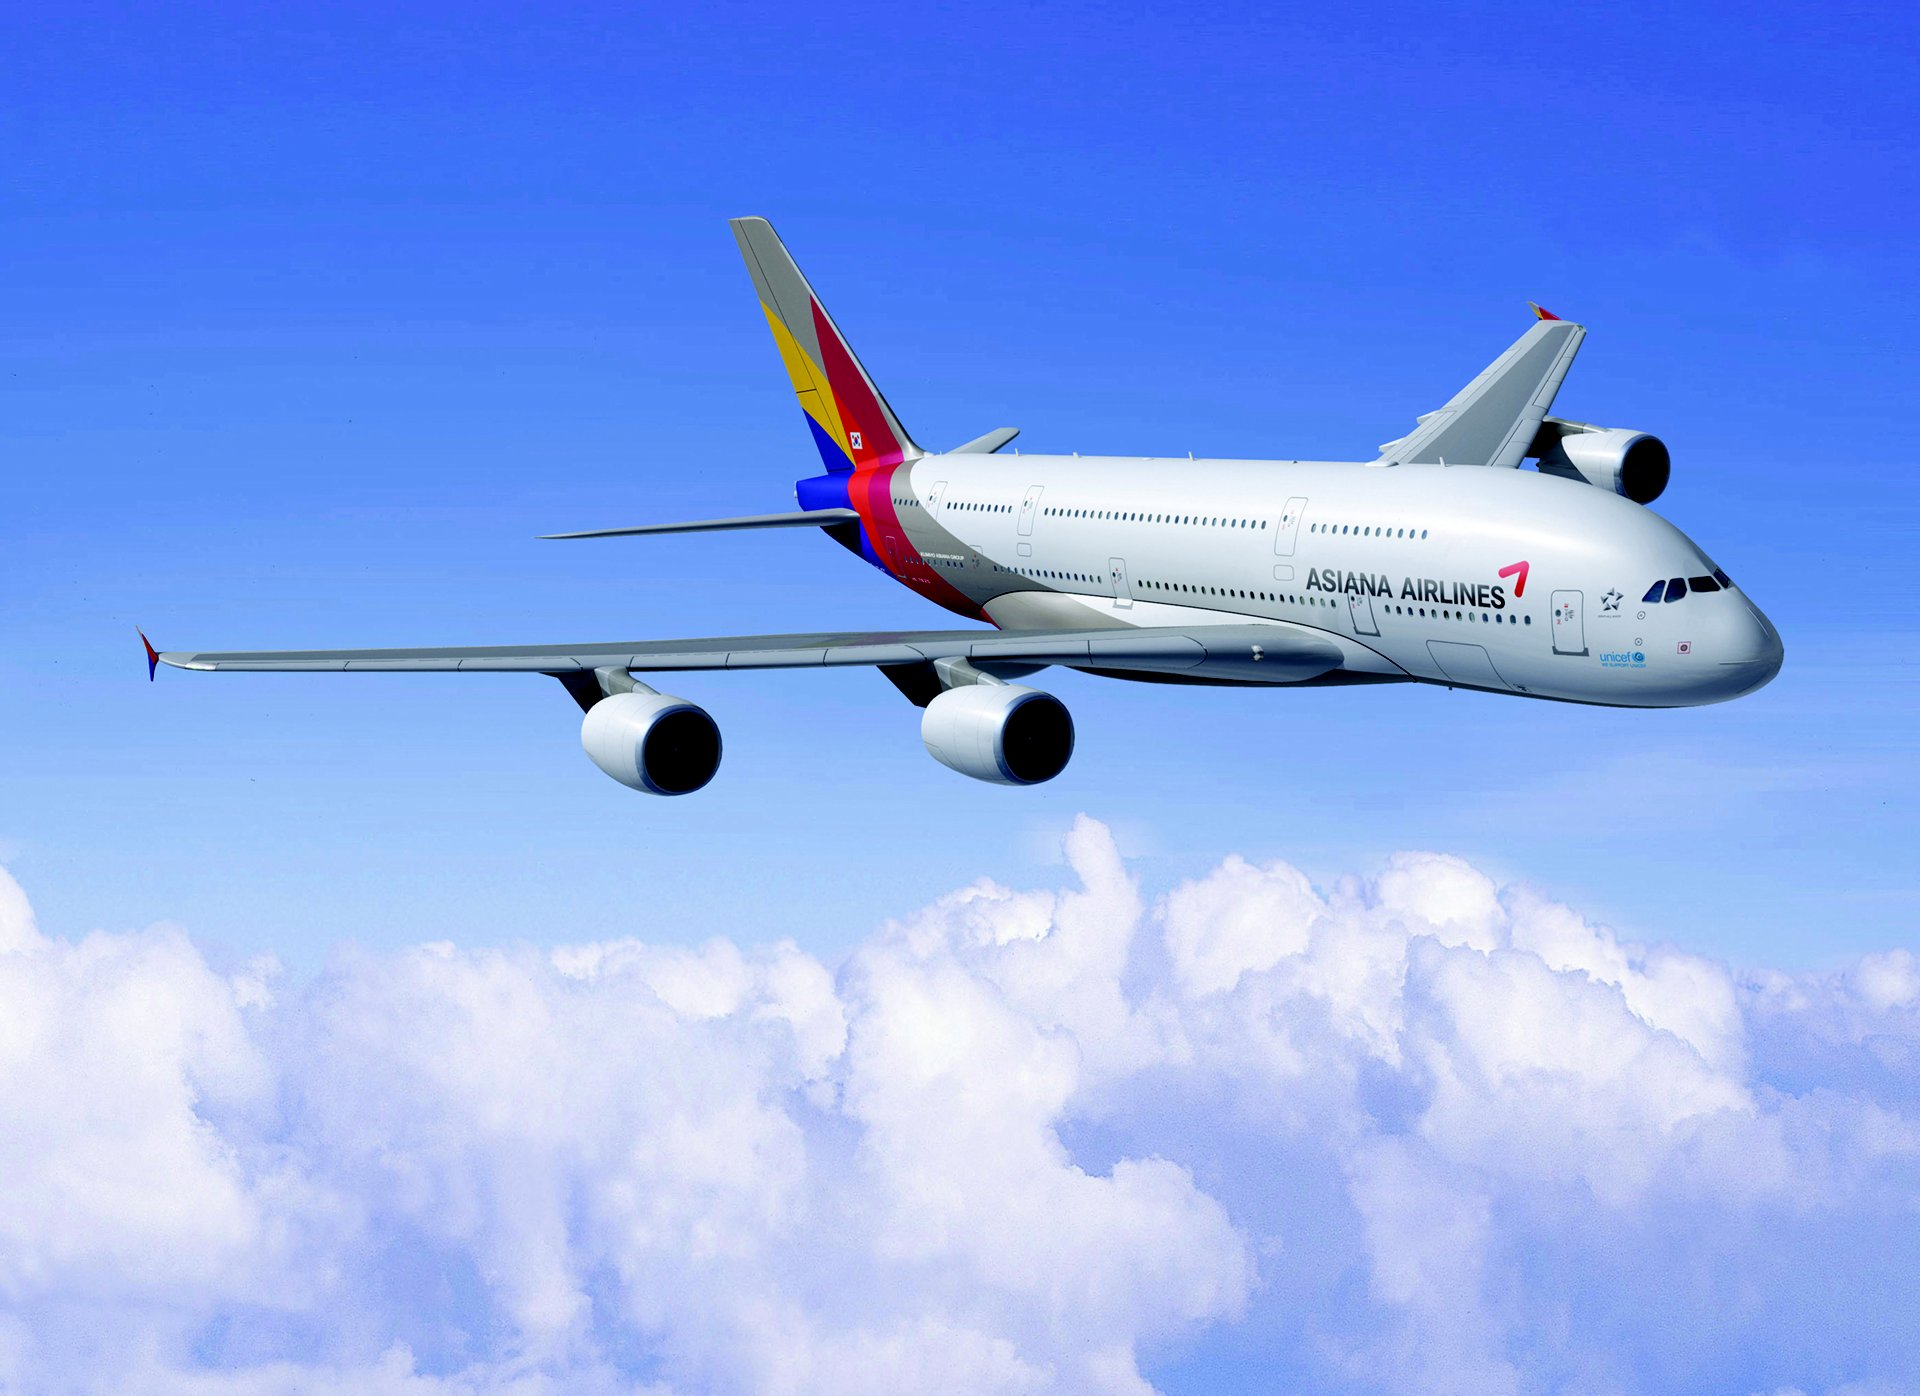 Airbus' 21st century flagship jetliner – the double-deck A380 – is a key to Asiana Airlines' future vision and fleet modernisation strategy